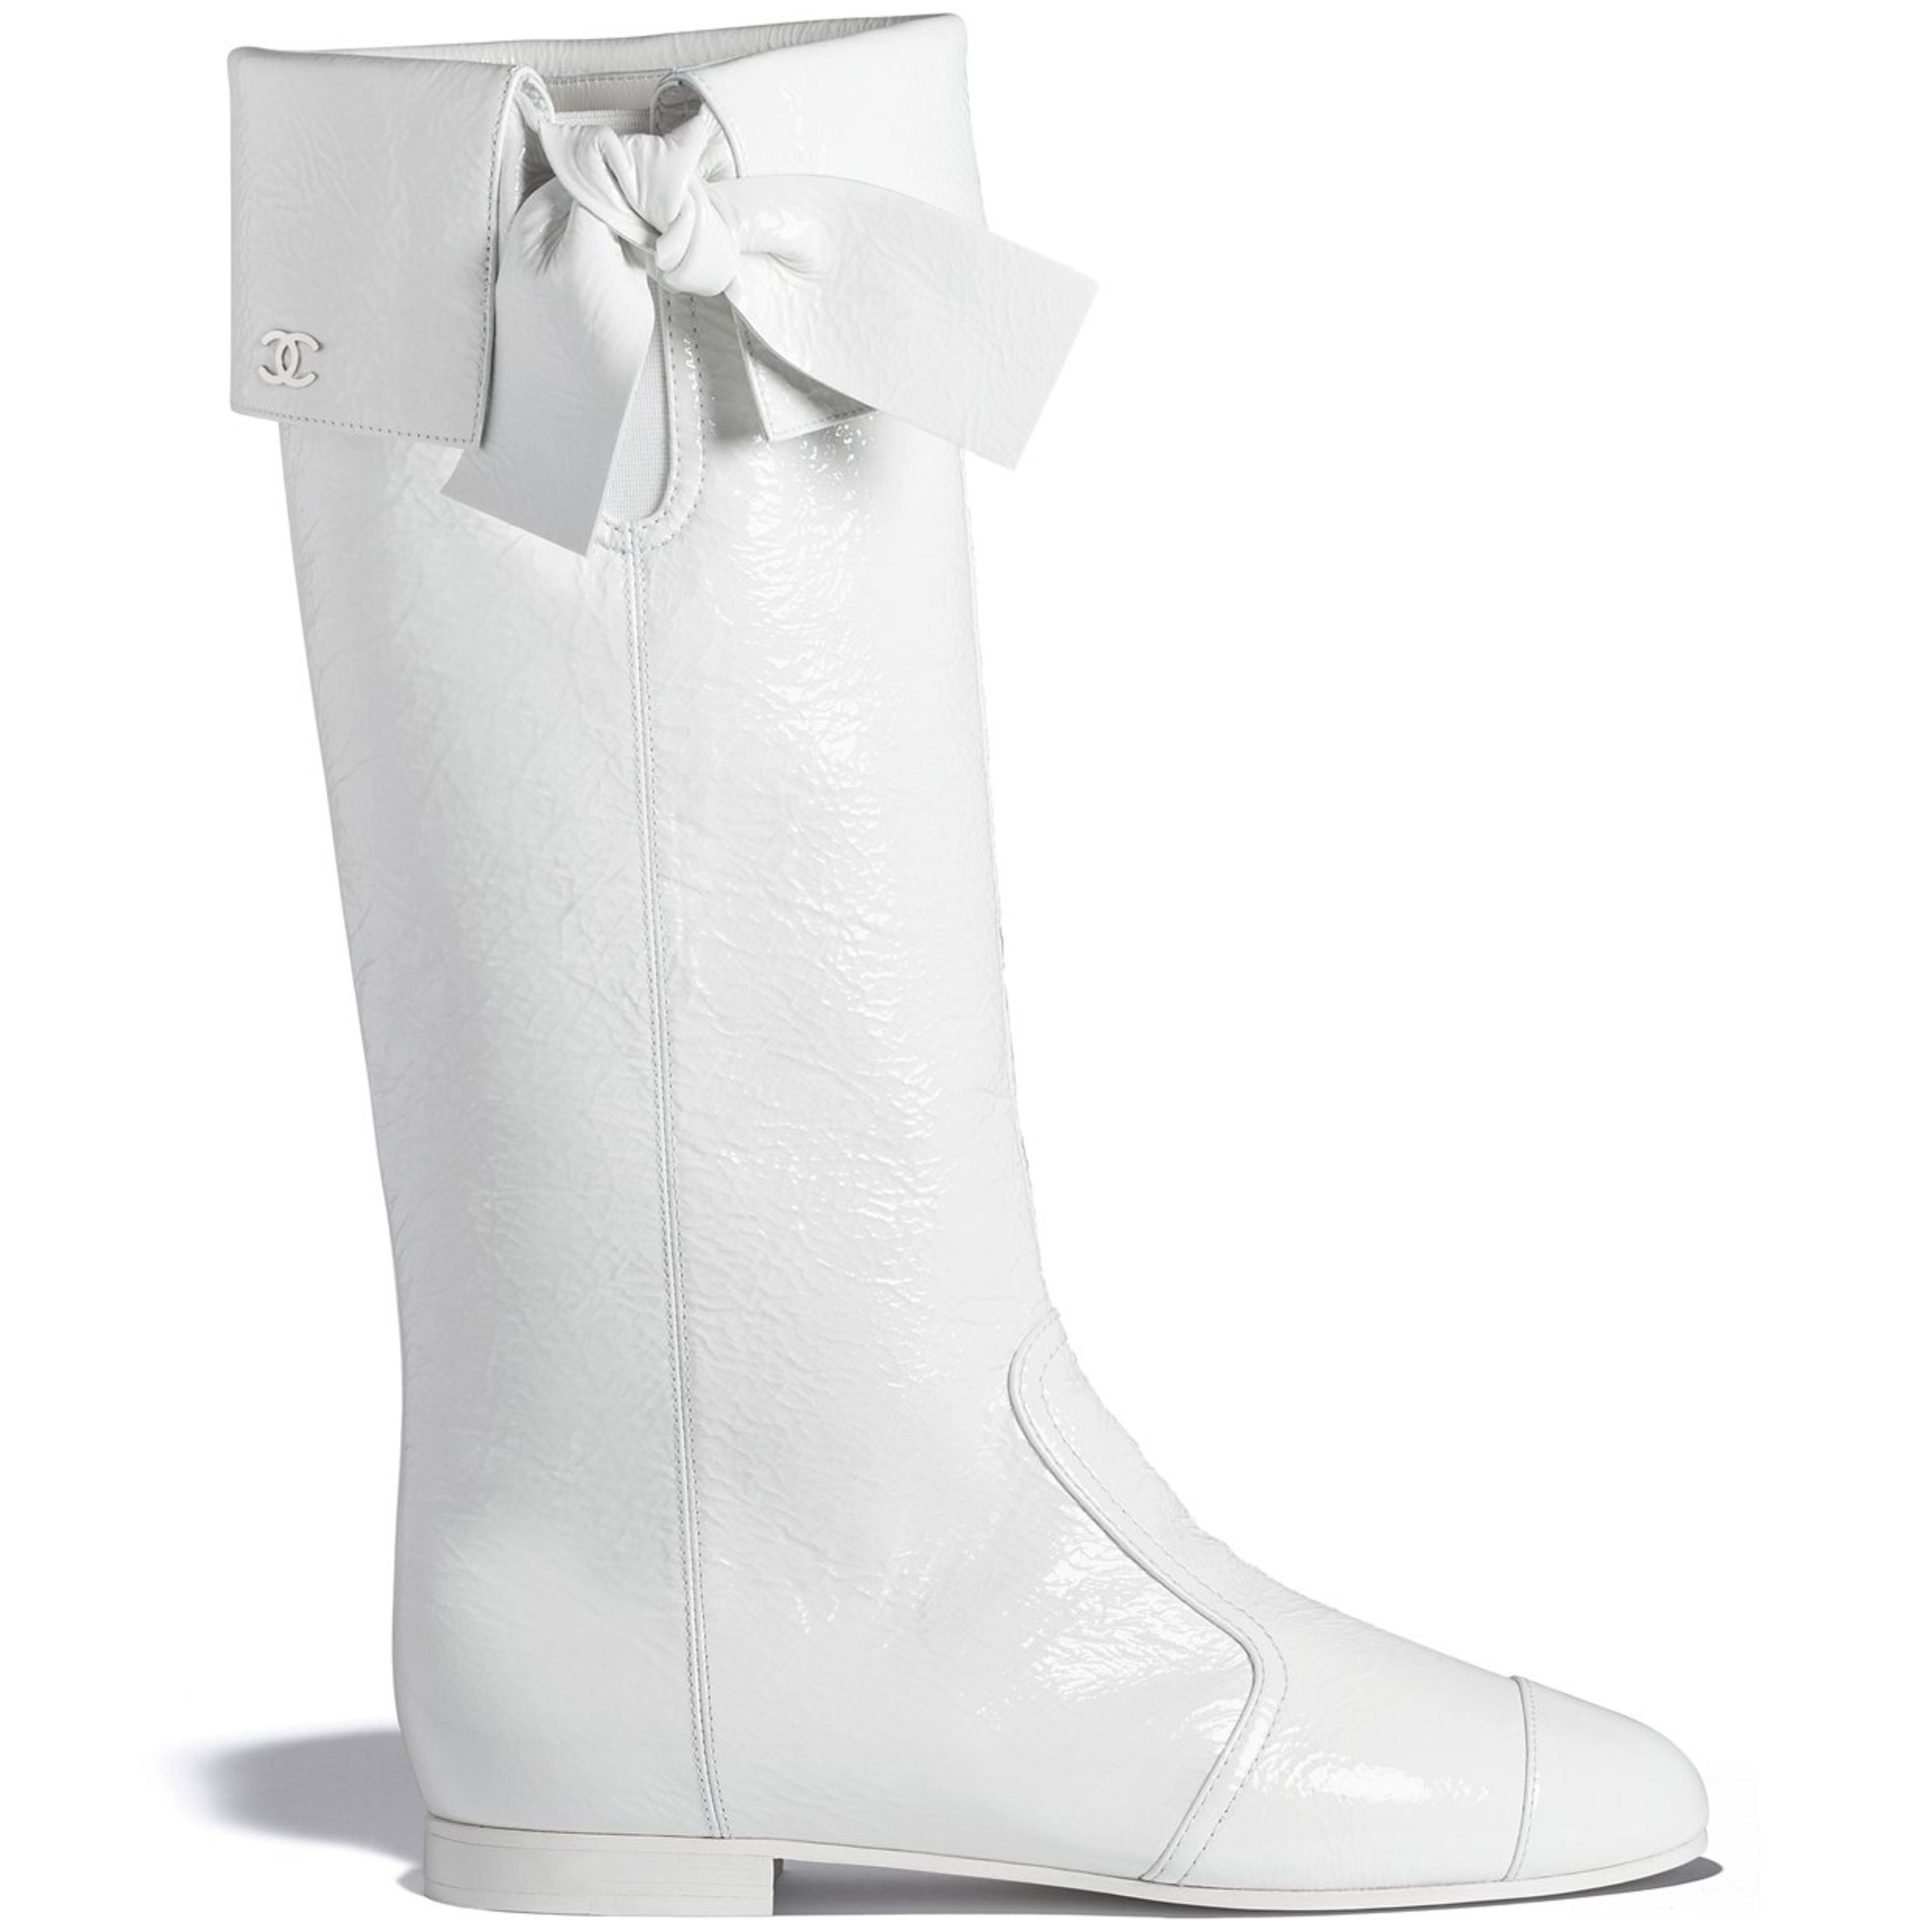 High Boots - White - Crumpled Lambskin - Default view - see full sized version